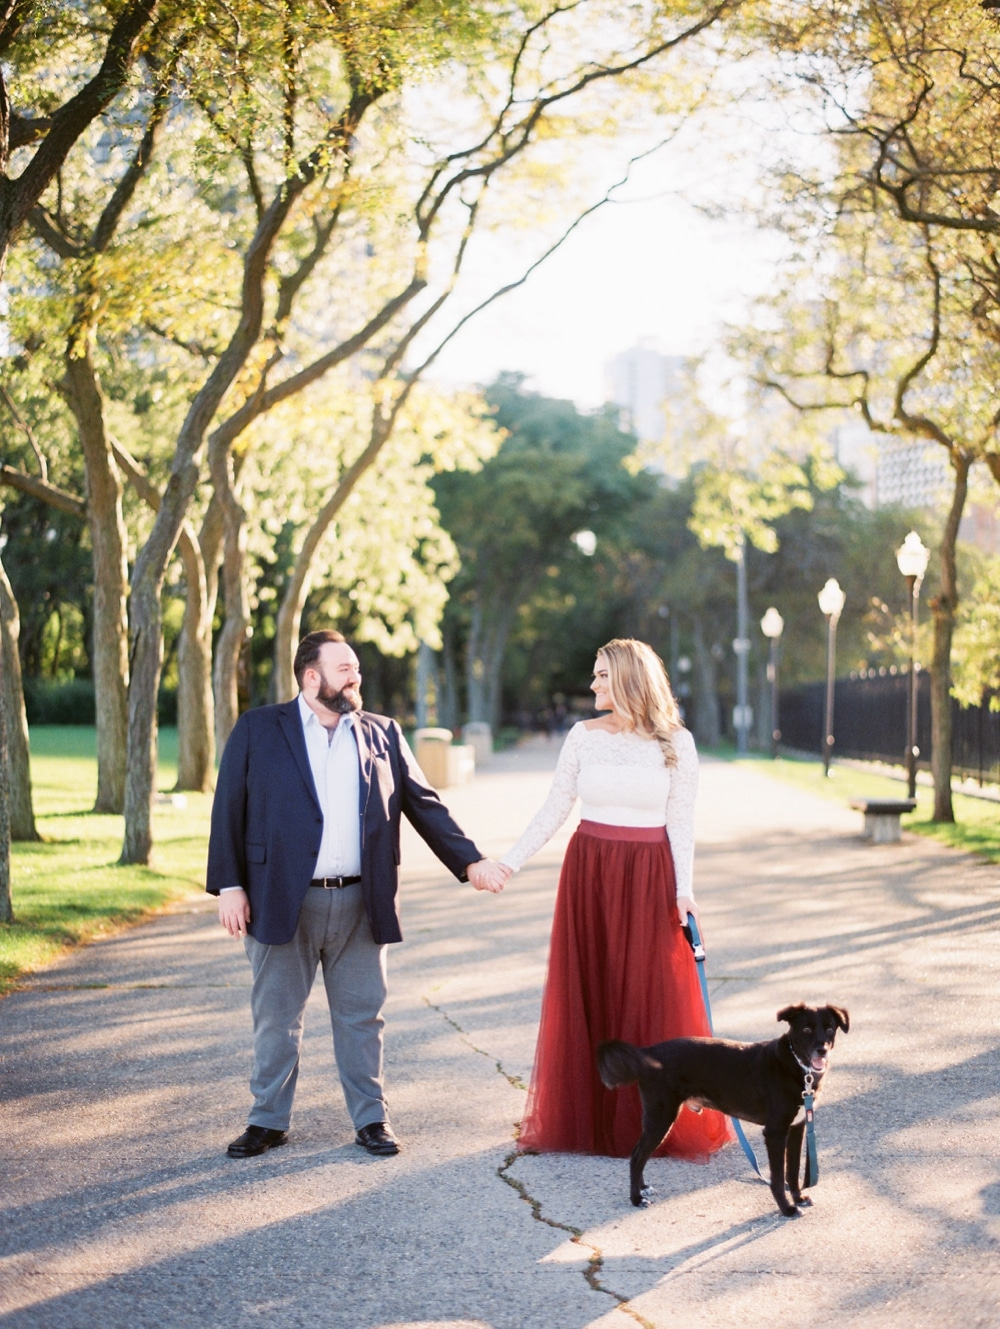 kristin-la-voie-photography-chicago-wedding-photographer-olive-park-8